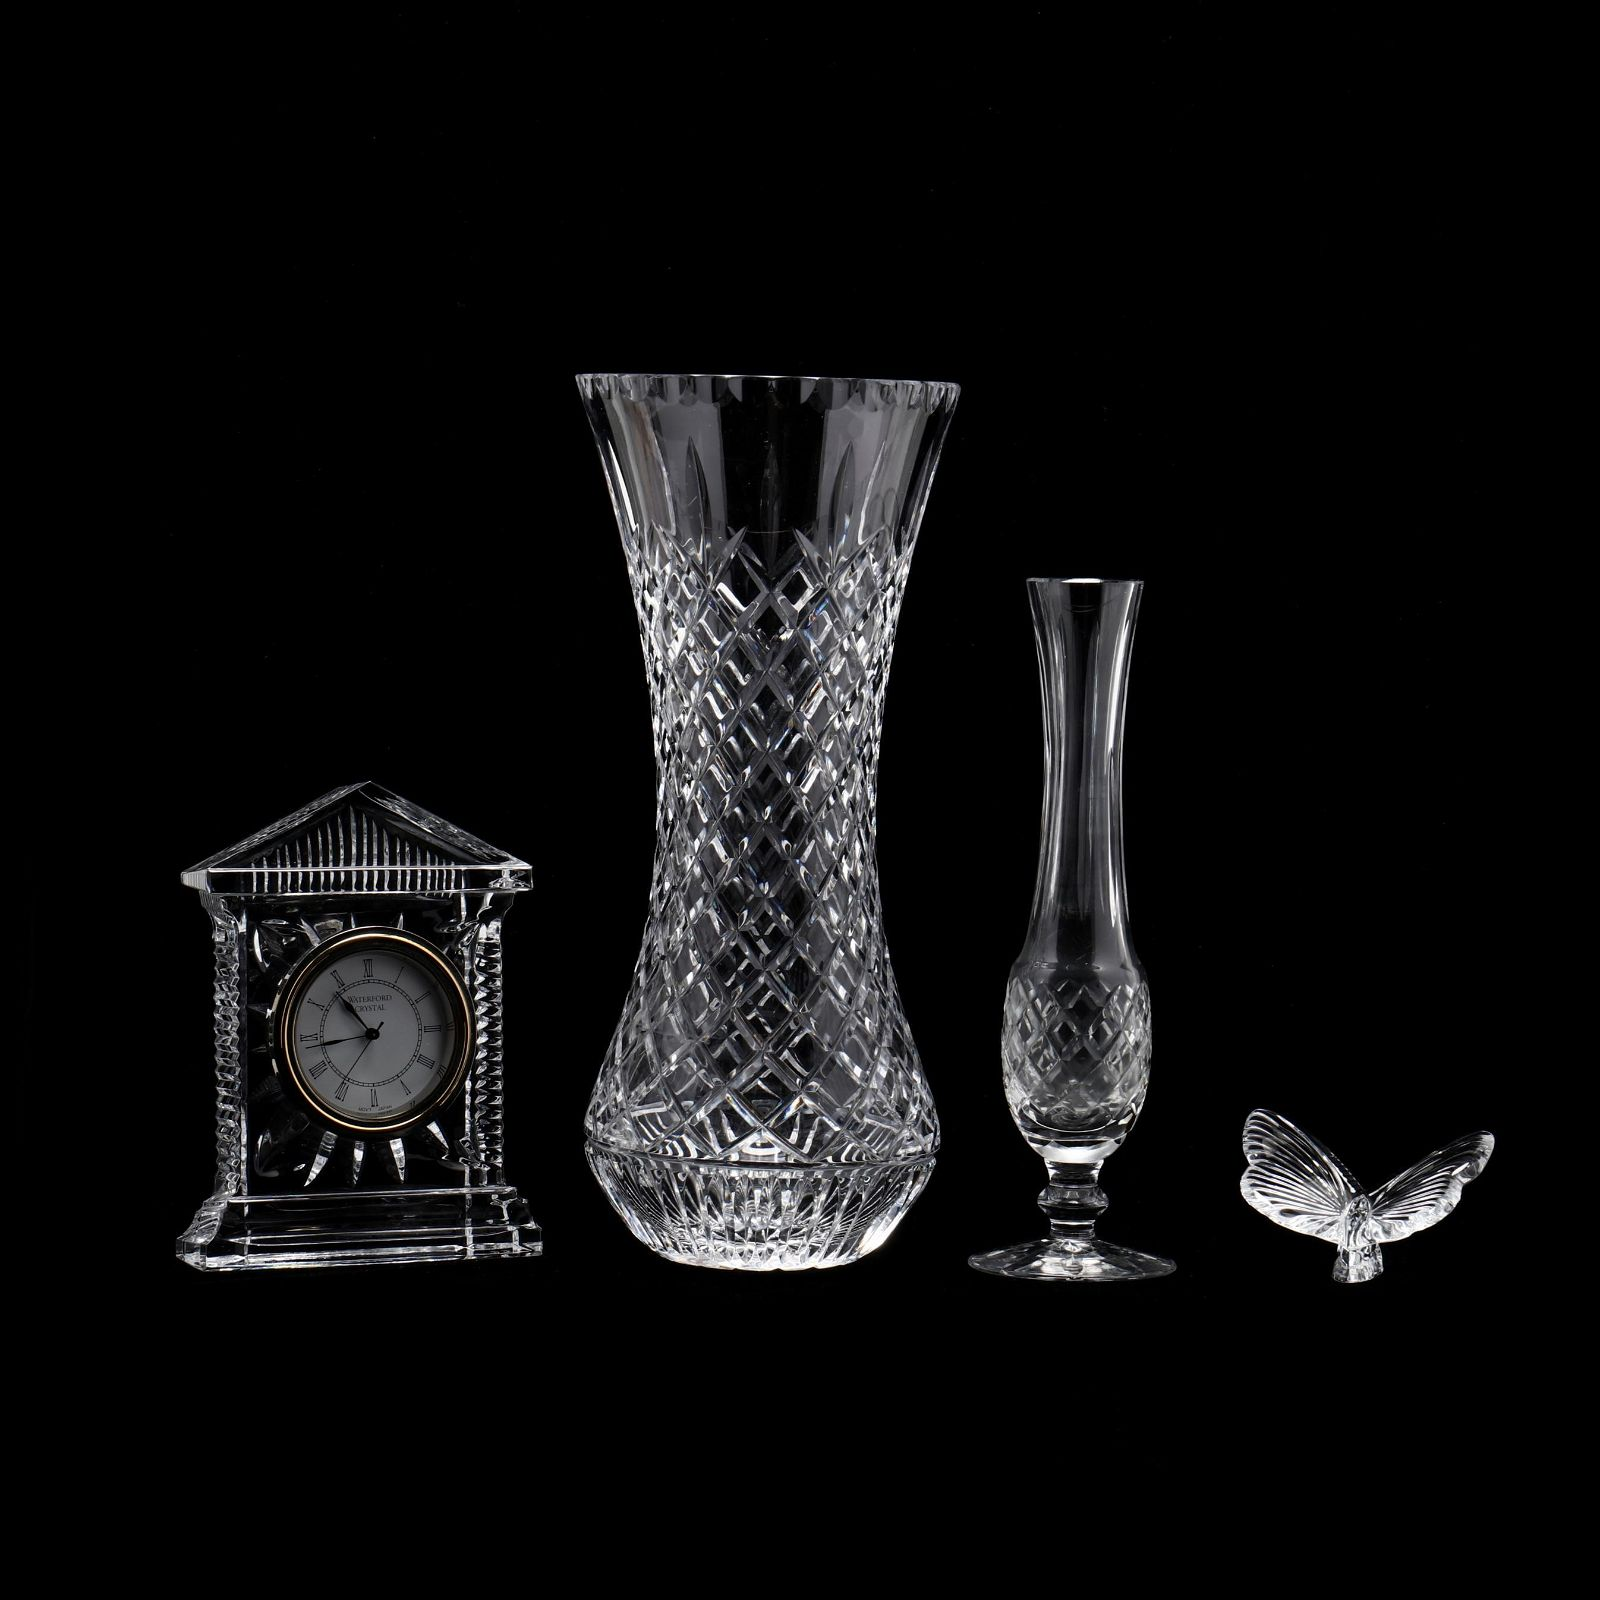 Three Waterford Accessories and Large Cut Crystal Vase